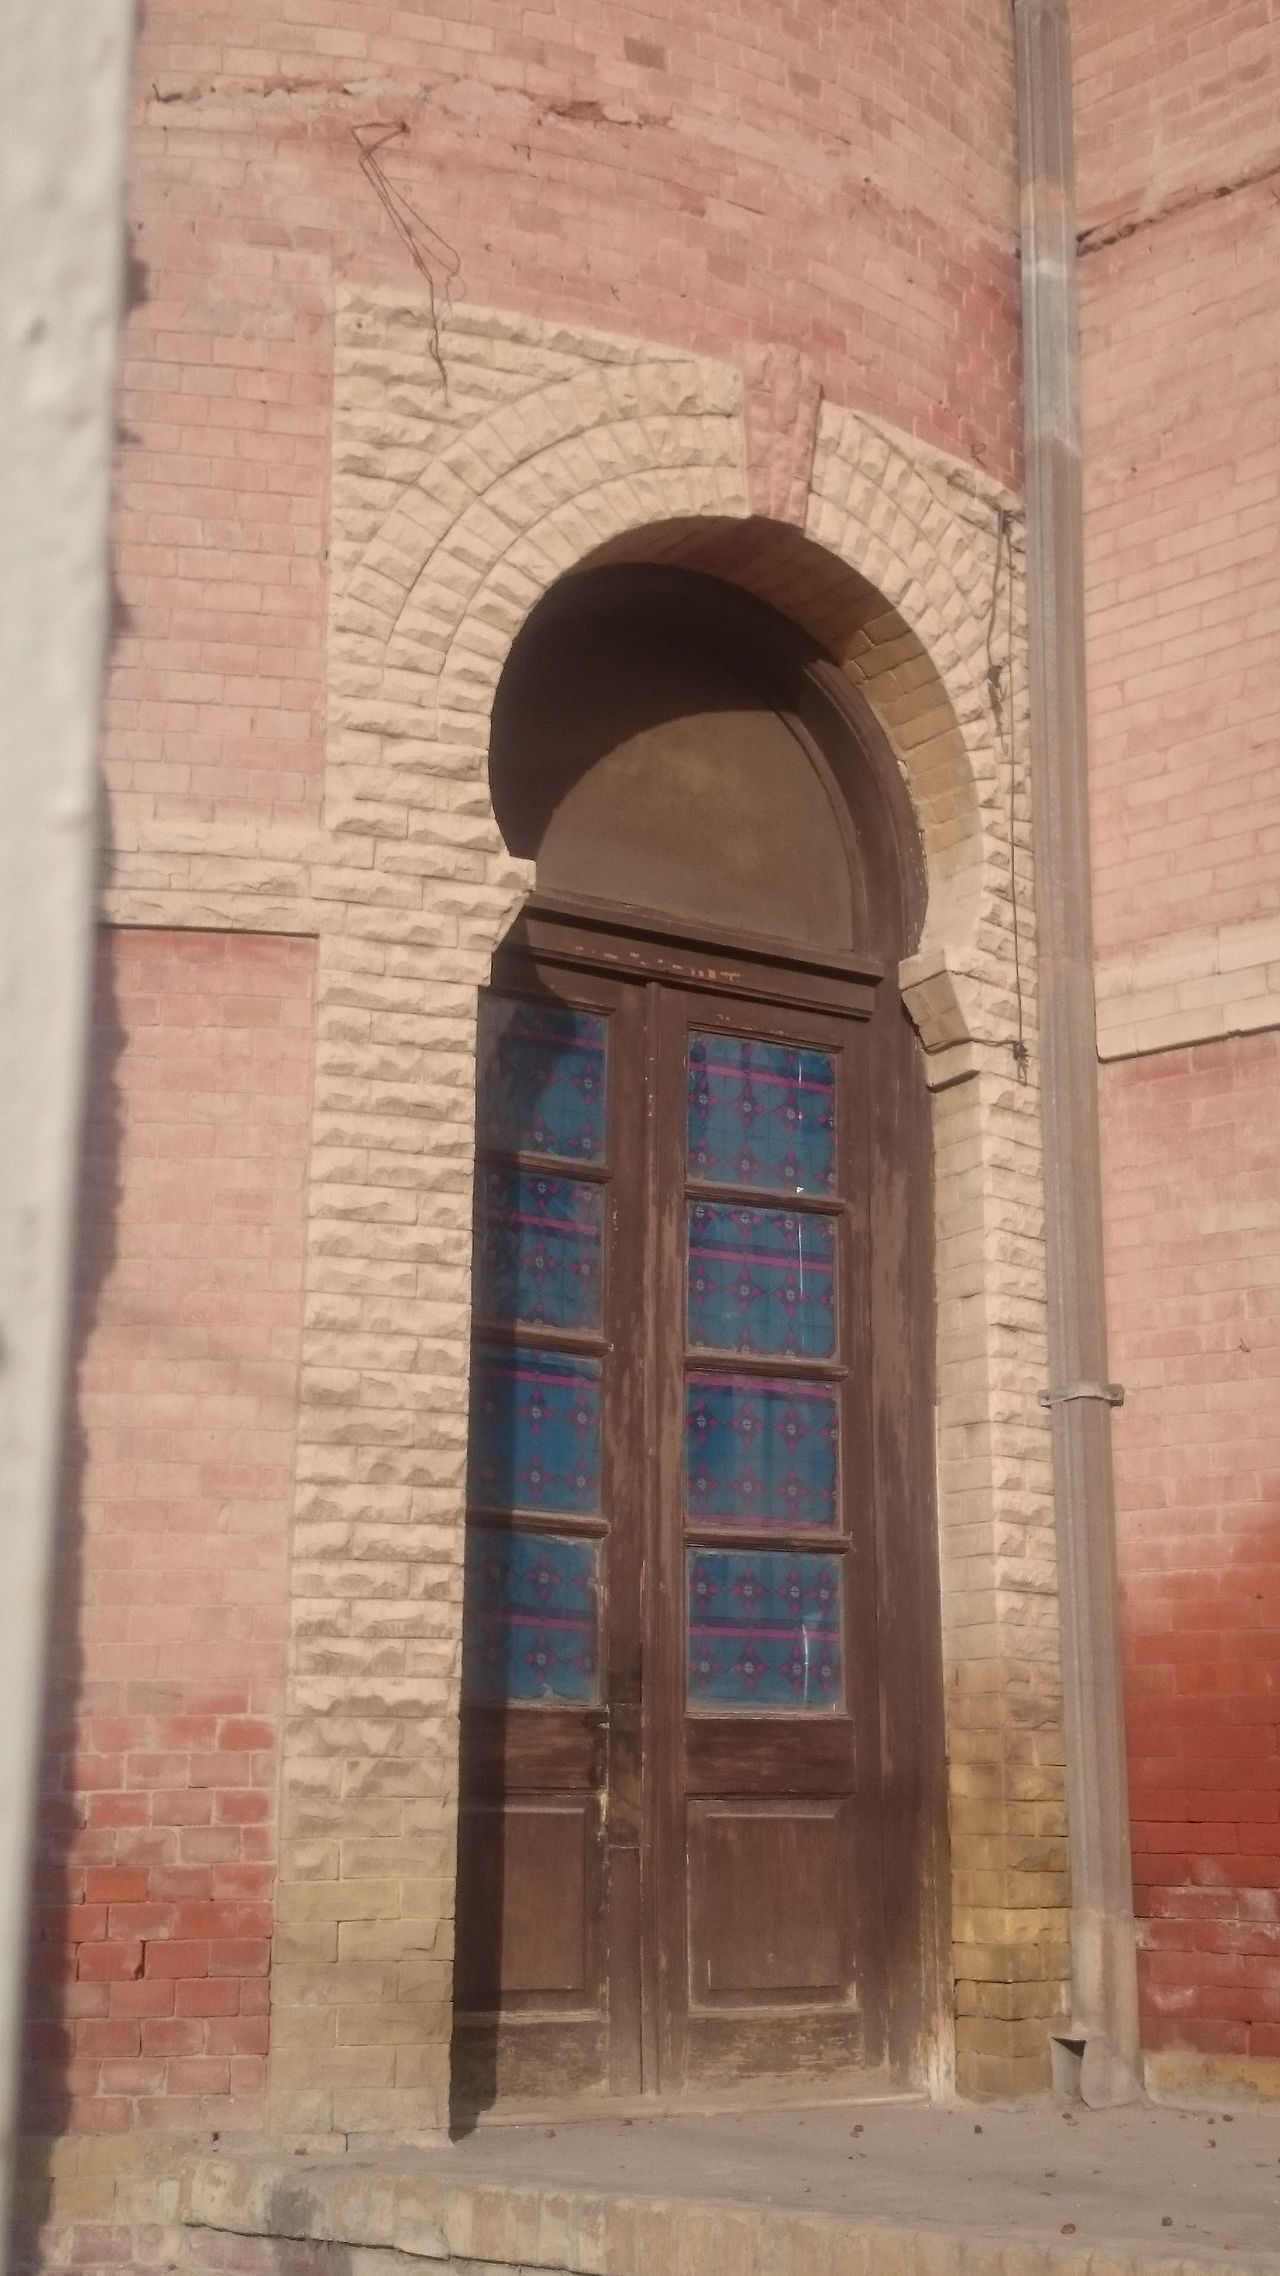 Architecture Building Exterior Built Structure Window No People Day Outdoors Arch Close-up Comarca Lagunera San Pedro De Las Colonias, Coah. Architecture Bazaar Arab Architecture In Mexico Arabic Architecture